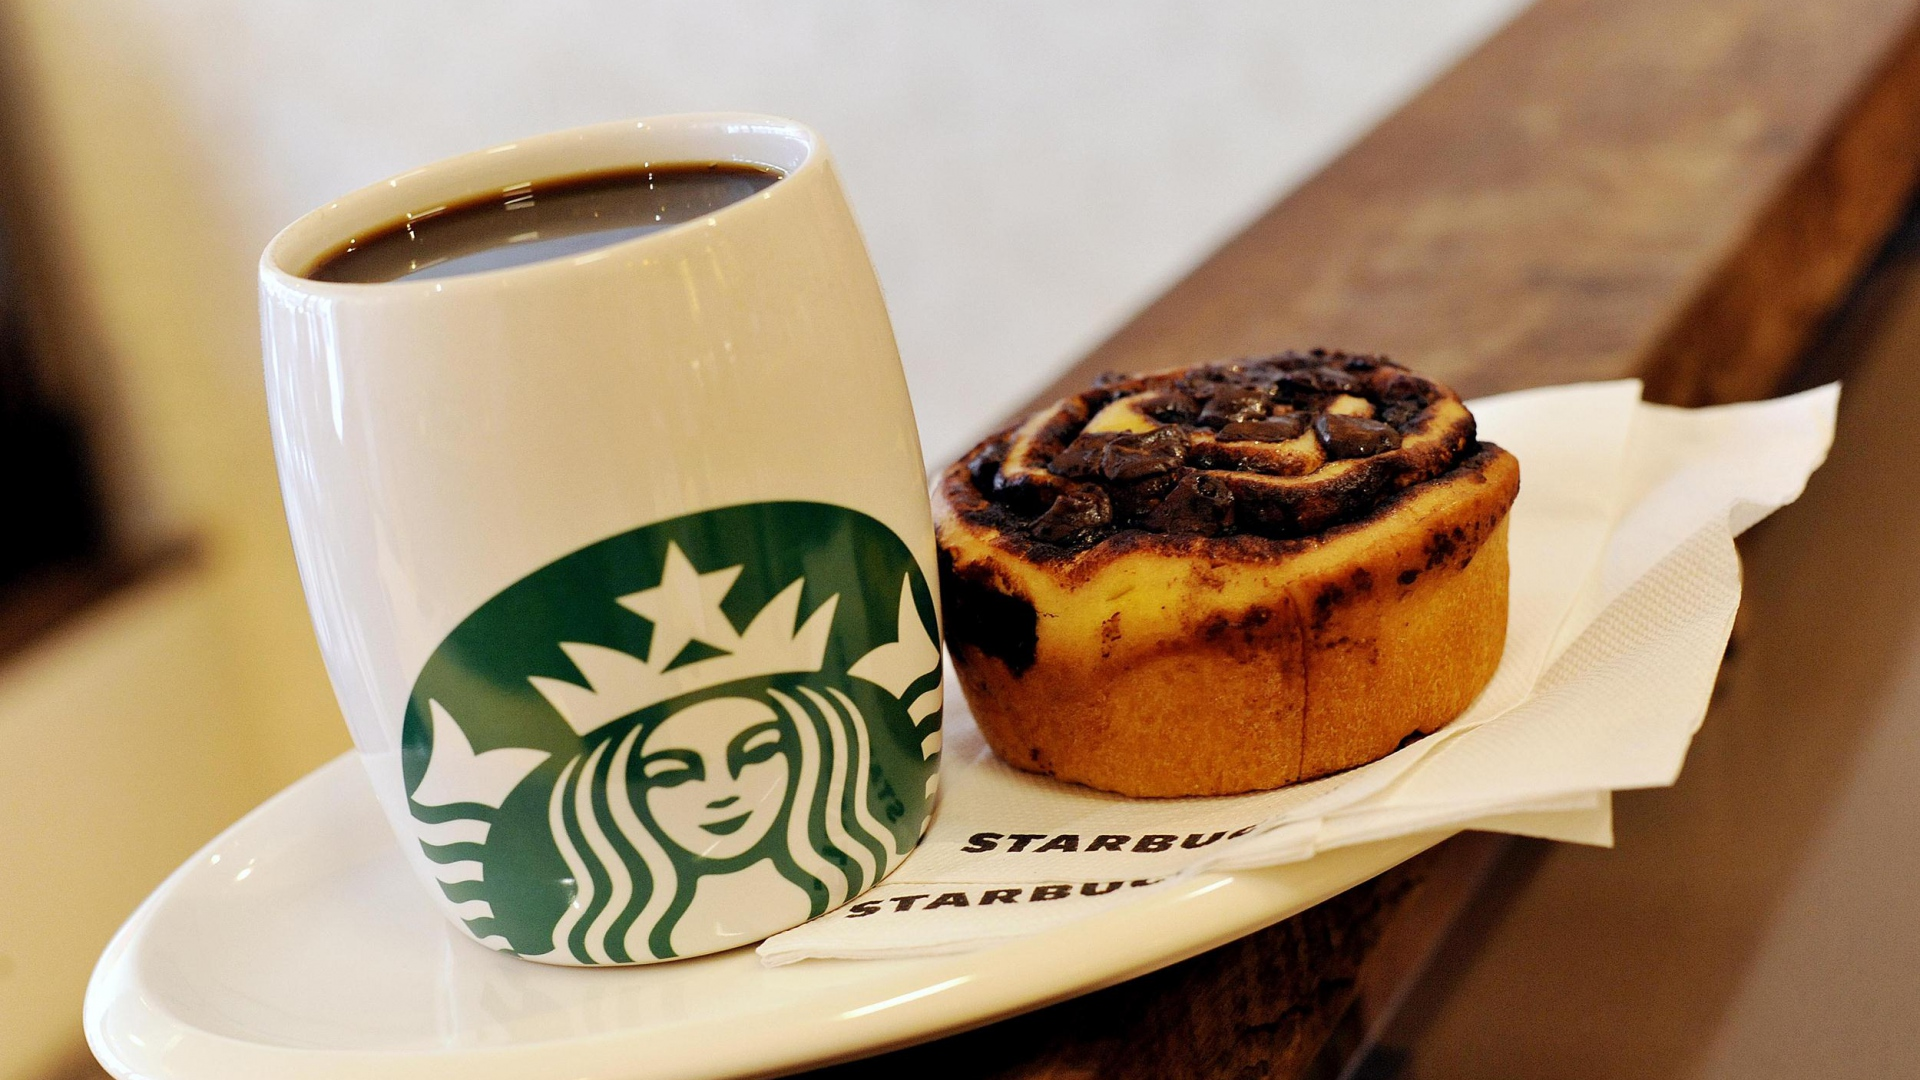 Starbucks Coffee Cake Hd Wallpapers Hd Wallpapers